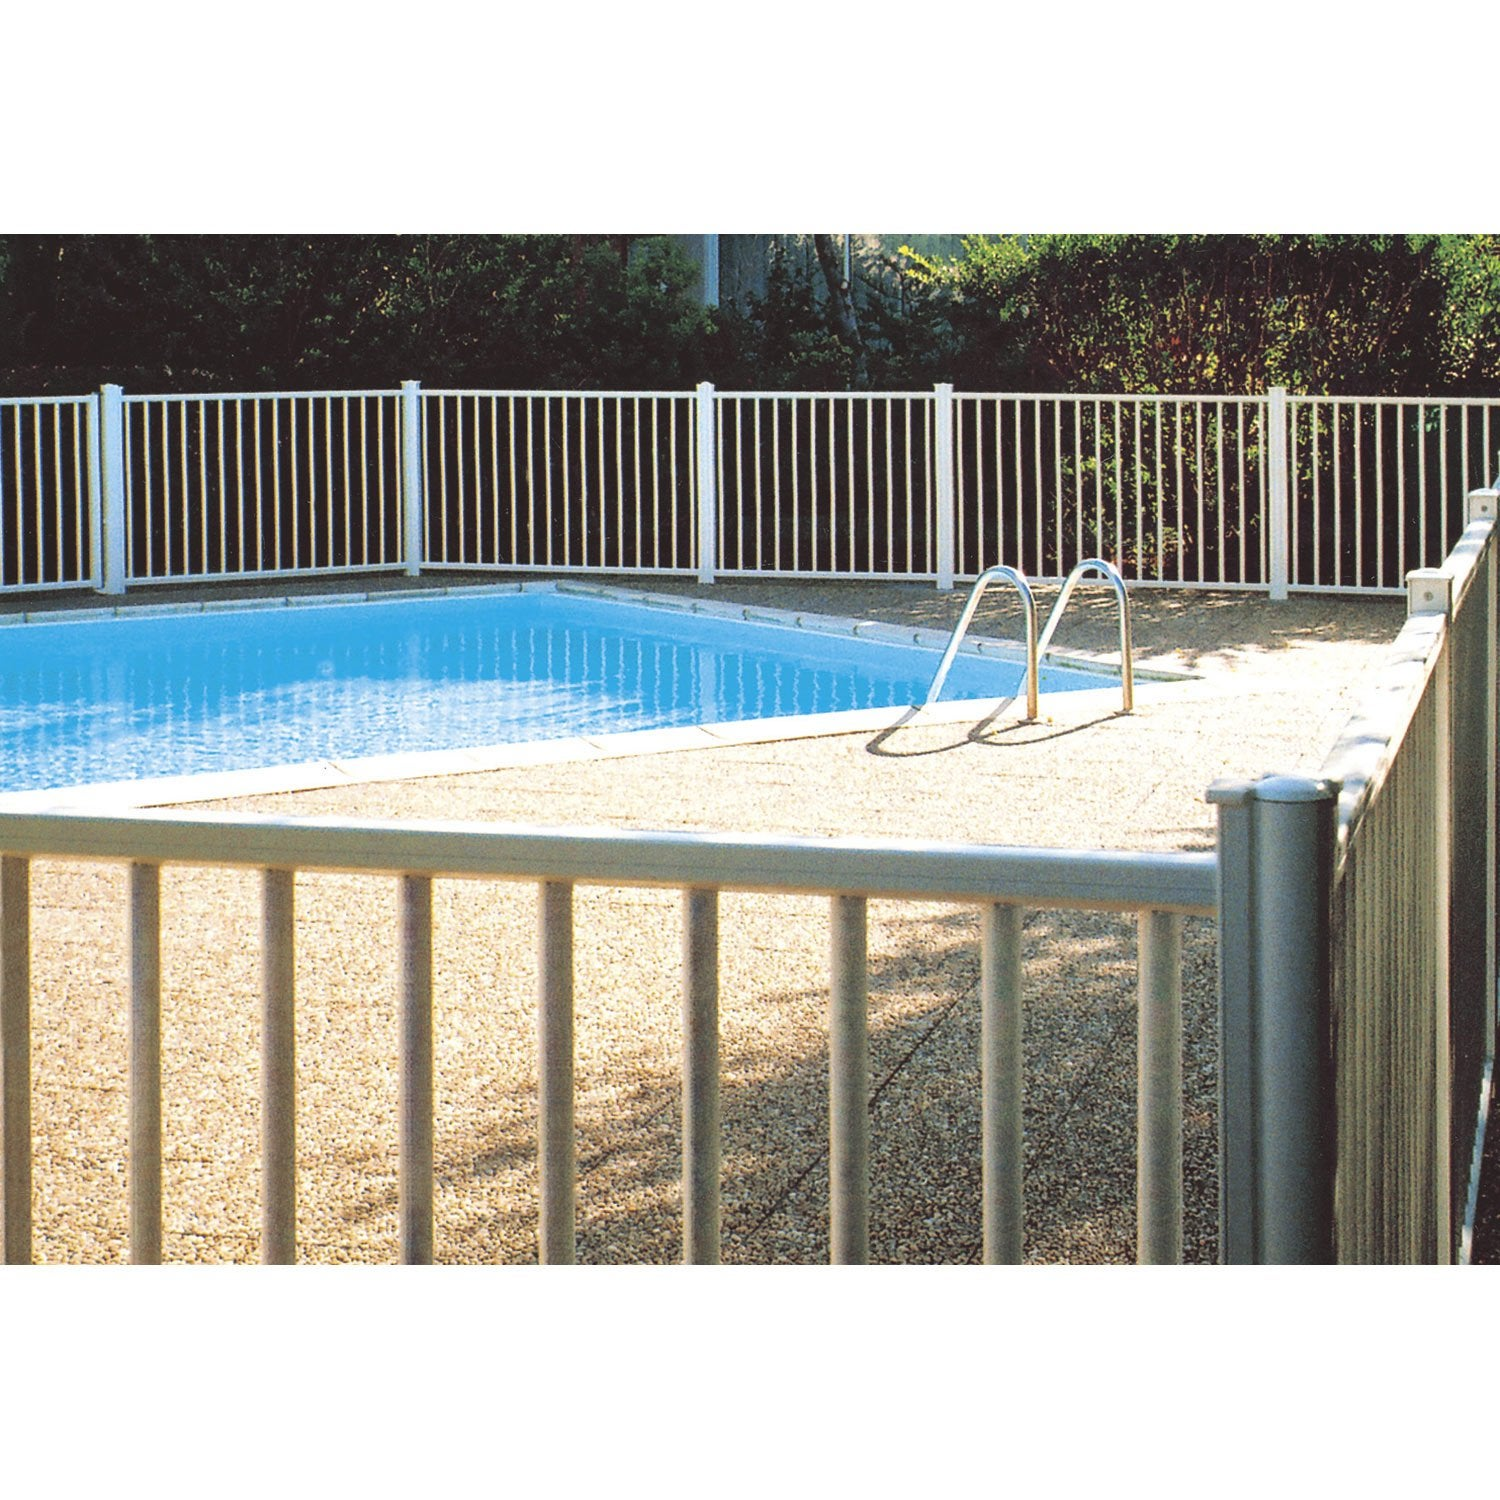 Barri re pour piscine aluminium issambres blanc 9010 h for Clotures de piscine